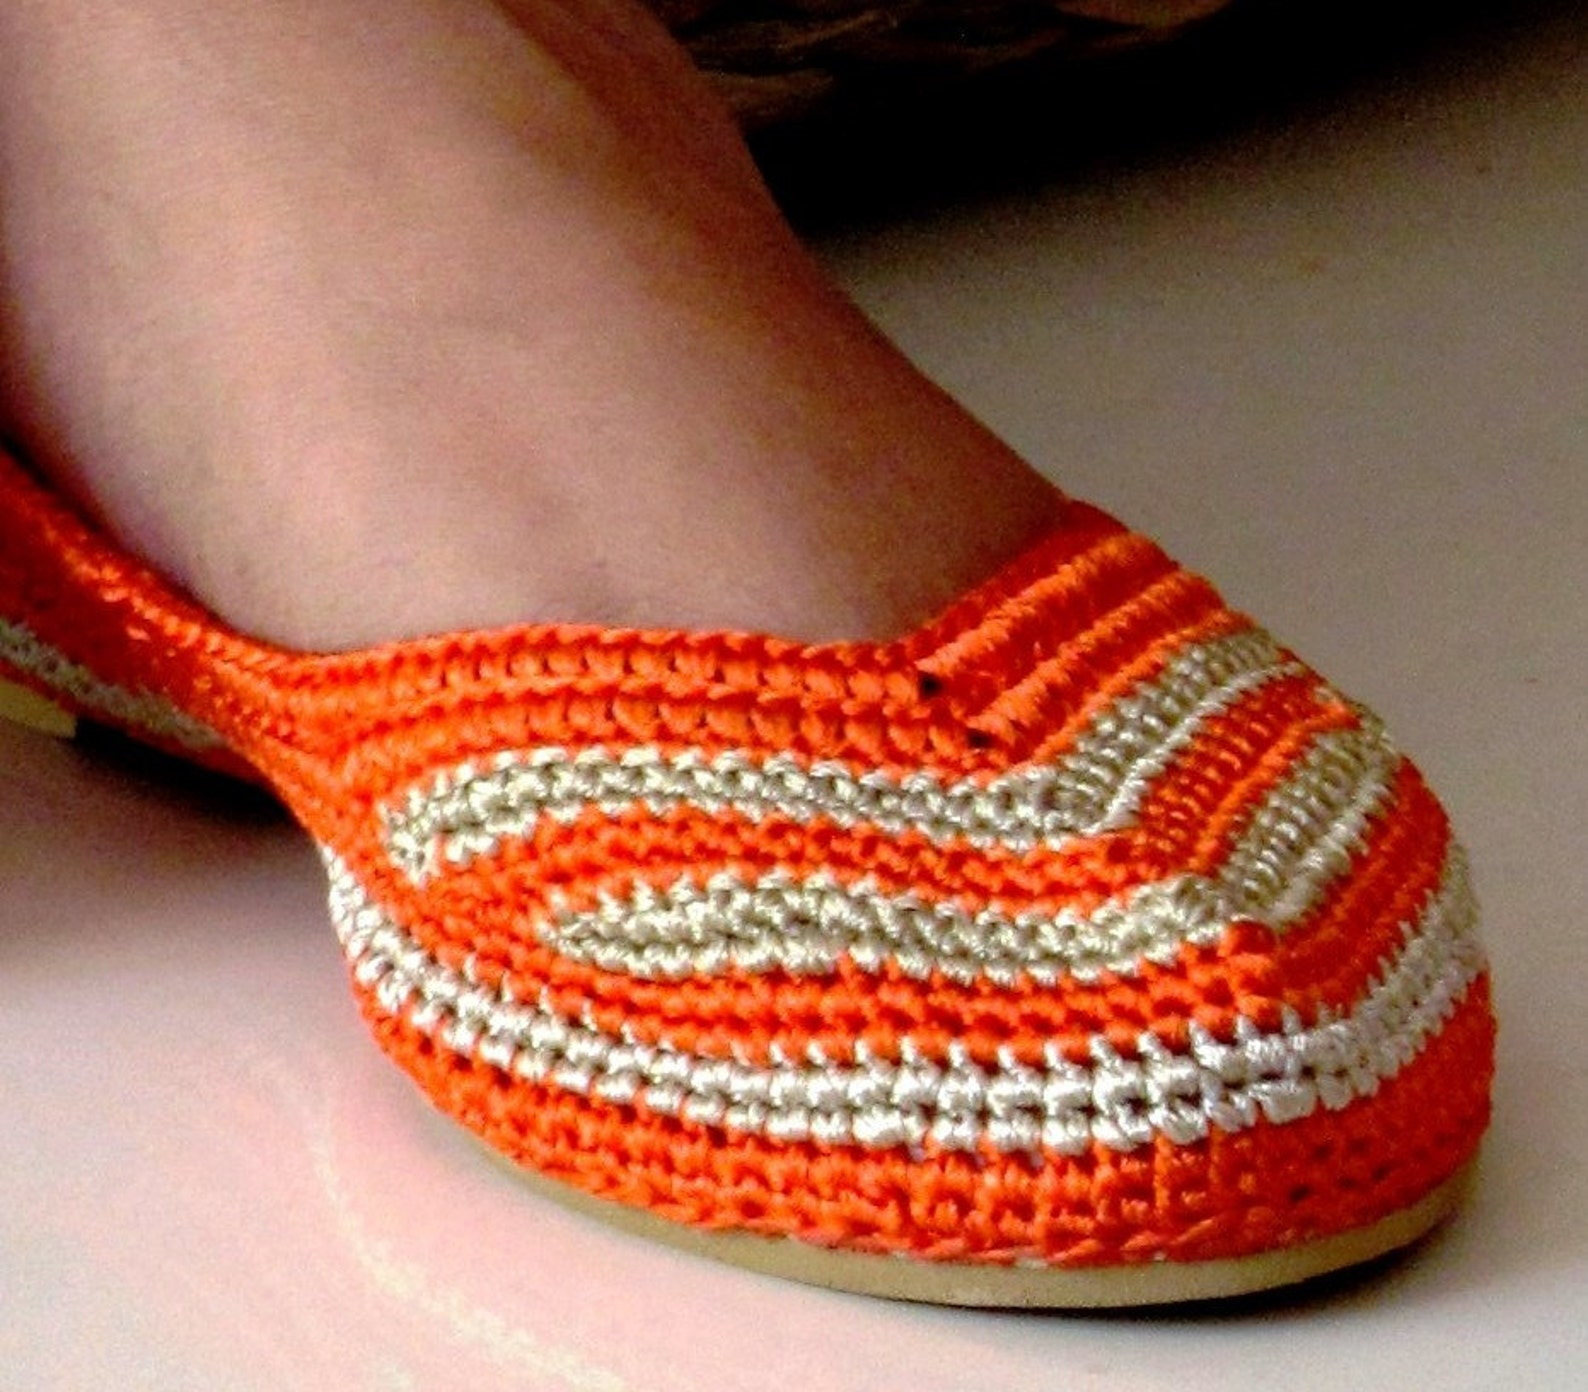 orange and beige crochet shoes | orange and beige crochet ballet shoes | orange crochet shoes